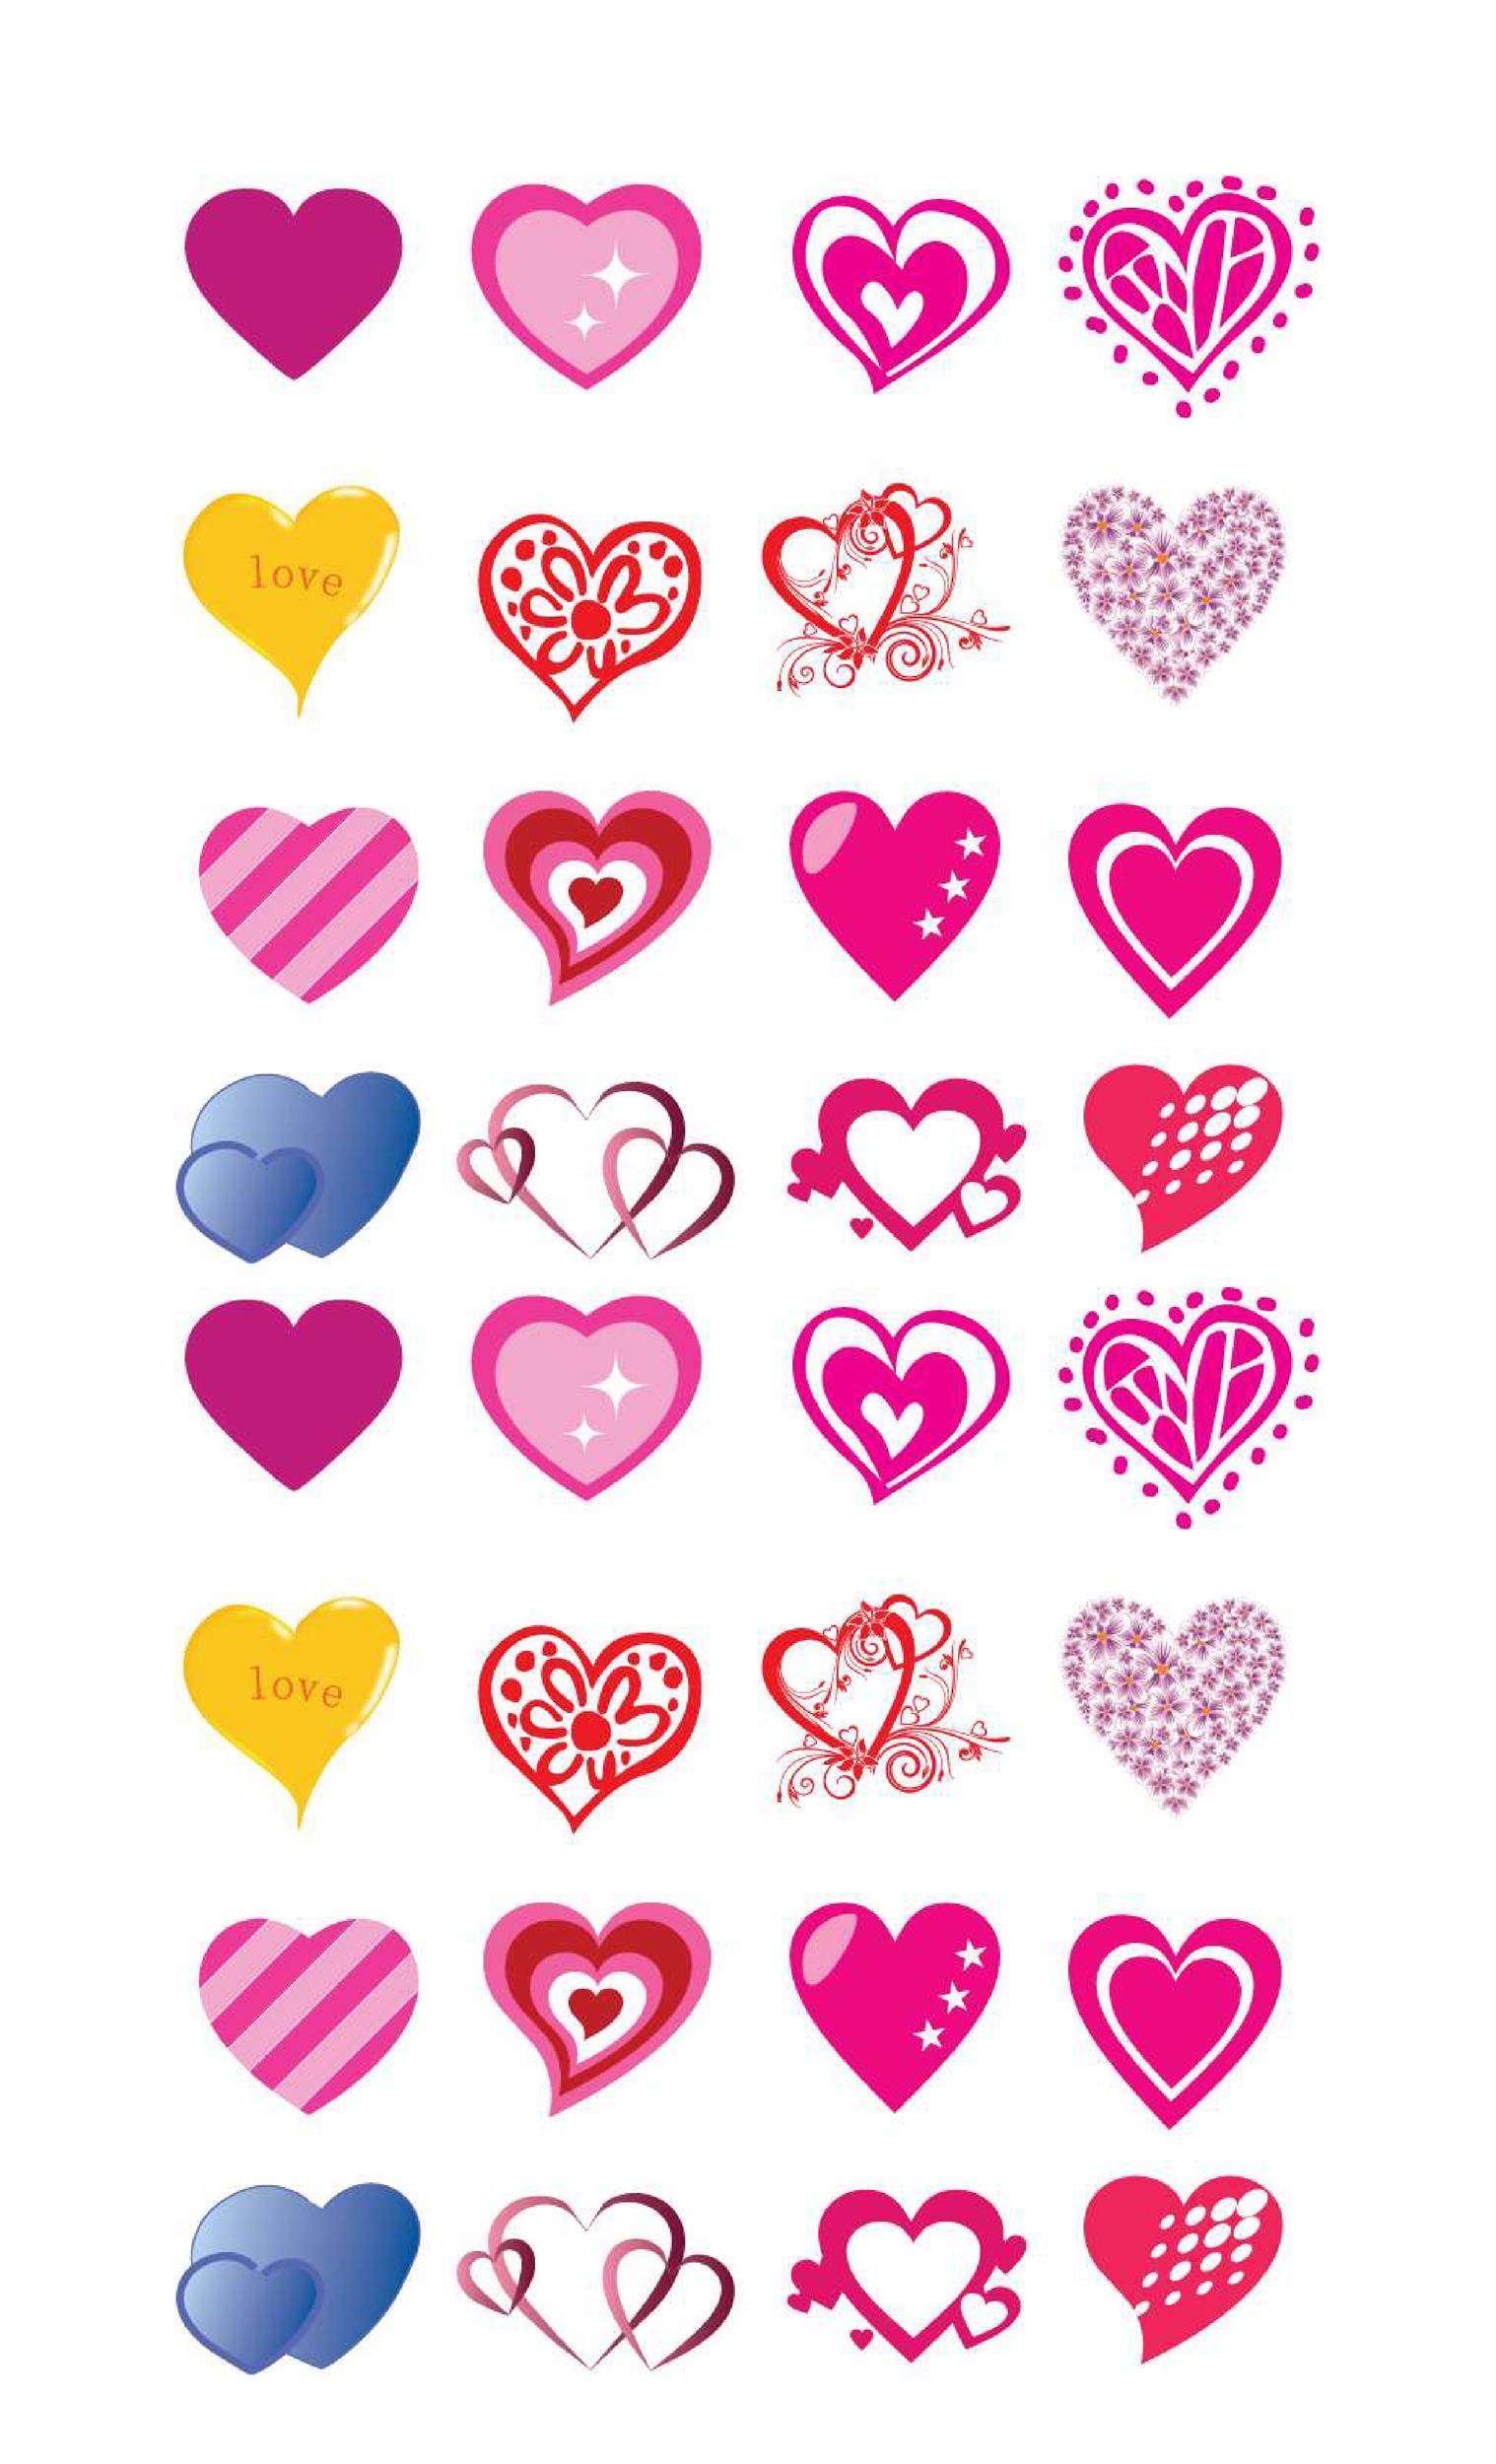 graphic regarding Hearts Printable called 40 Printable Centre Templates 15 Consumption Illustrations